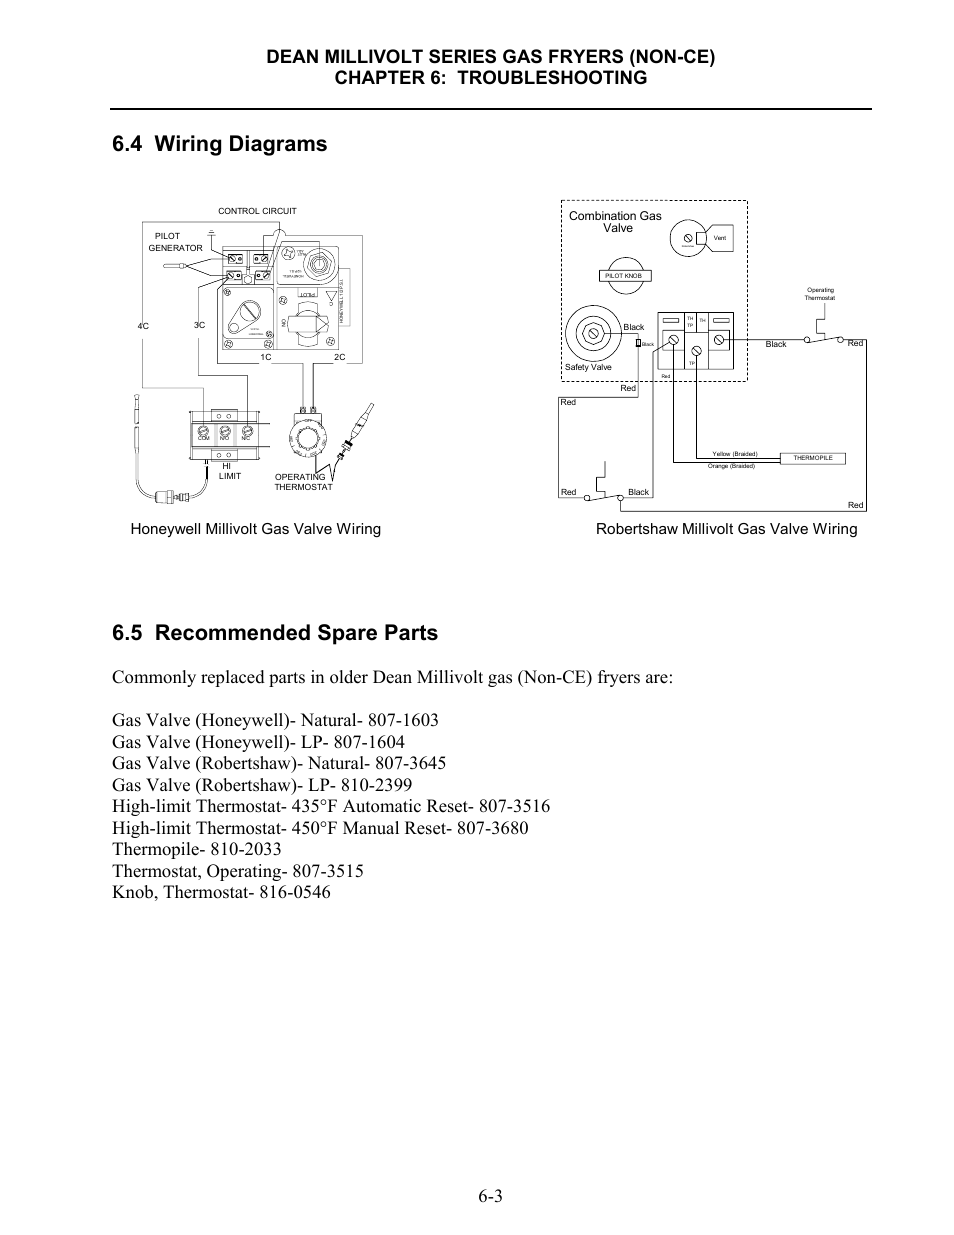 4 Wiring Diagrams  5 Recommended Spare Parts  Honeywell